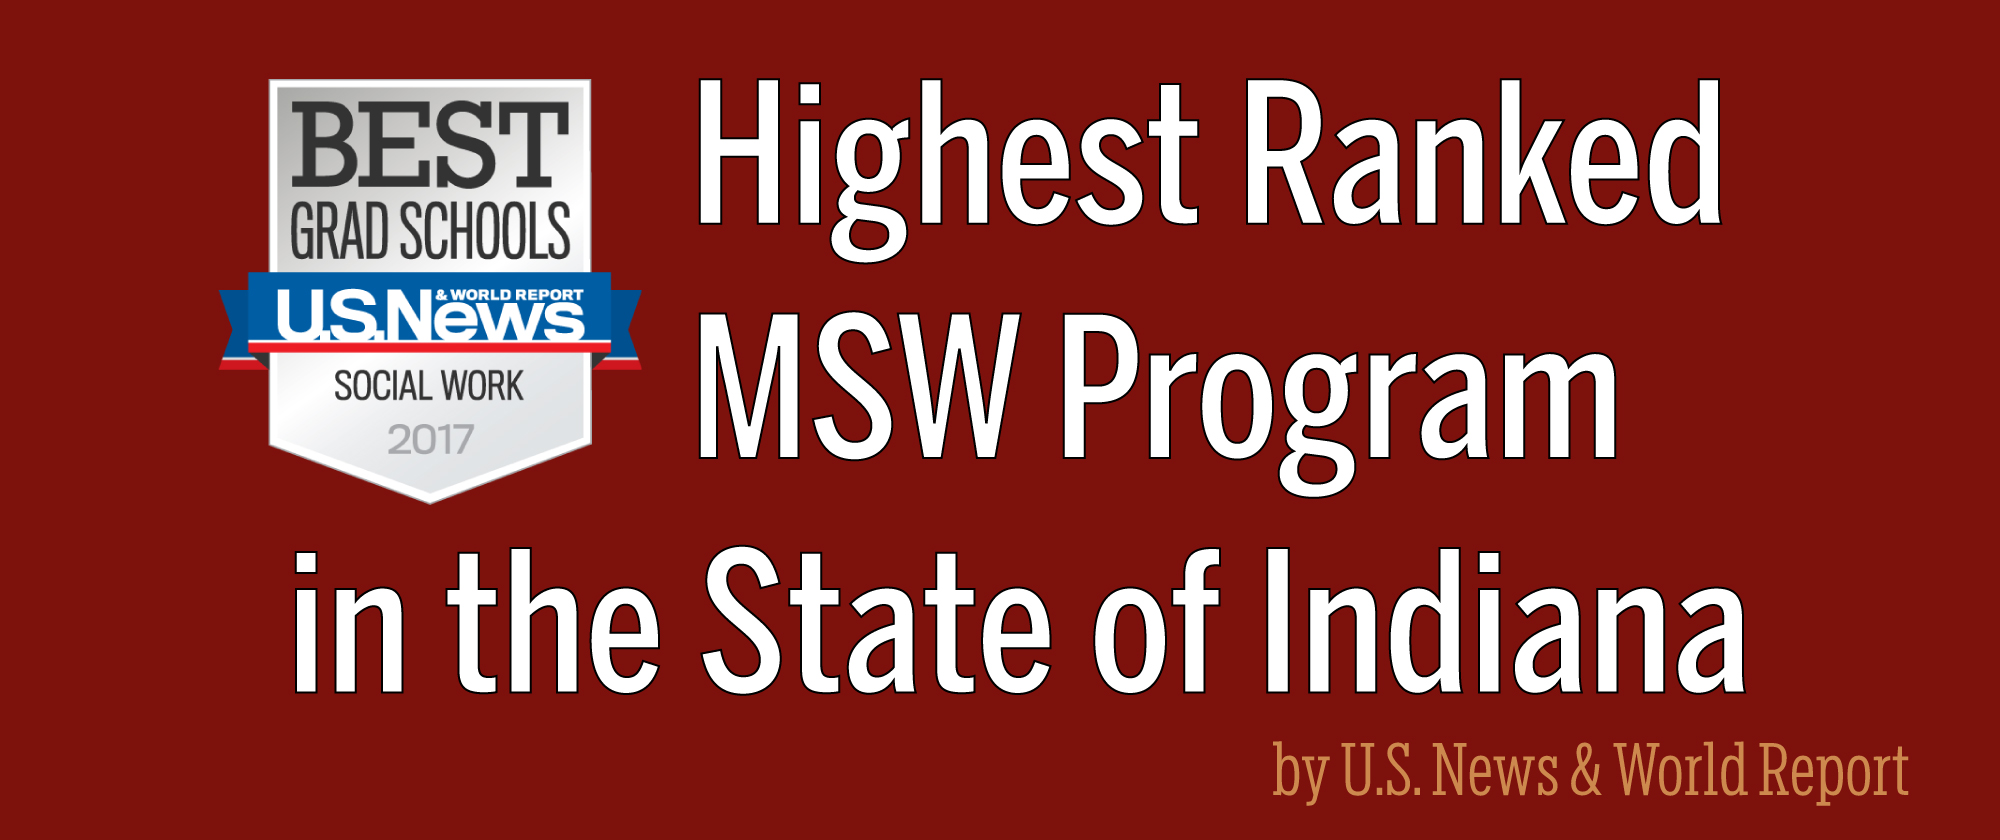 Oldest university-affiliated school of social work in the nation